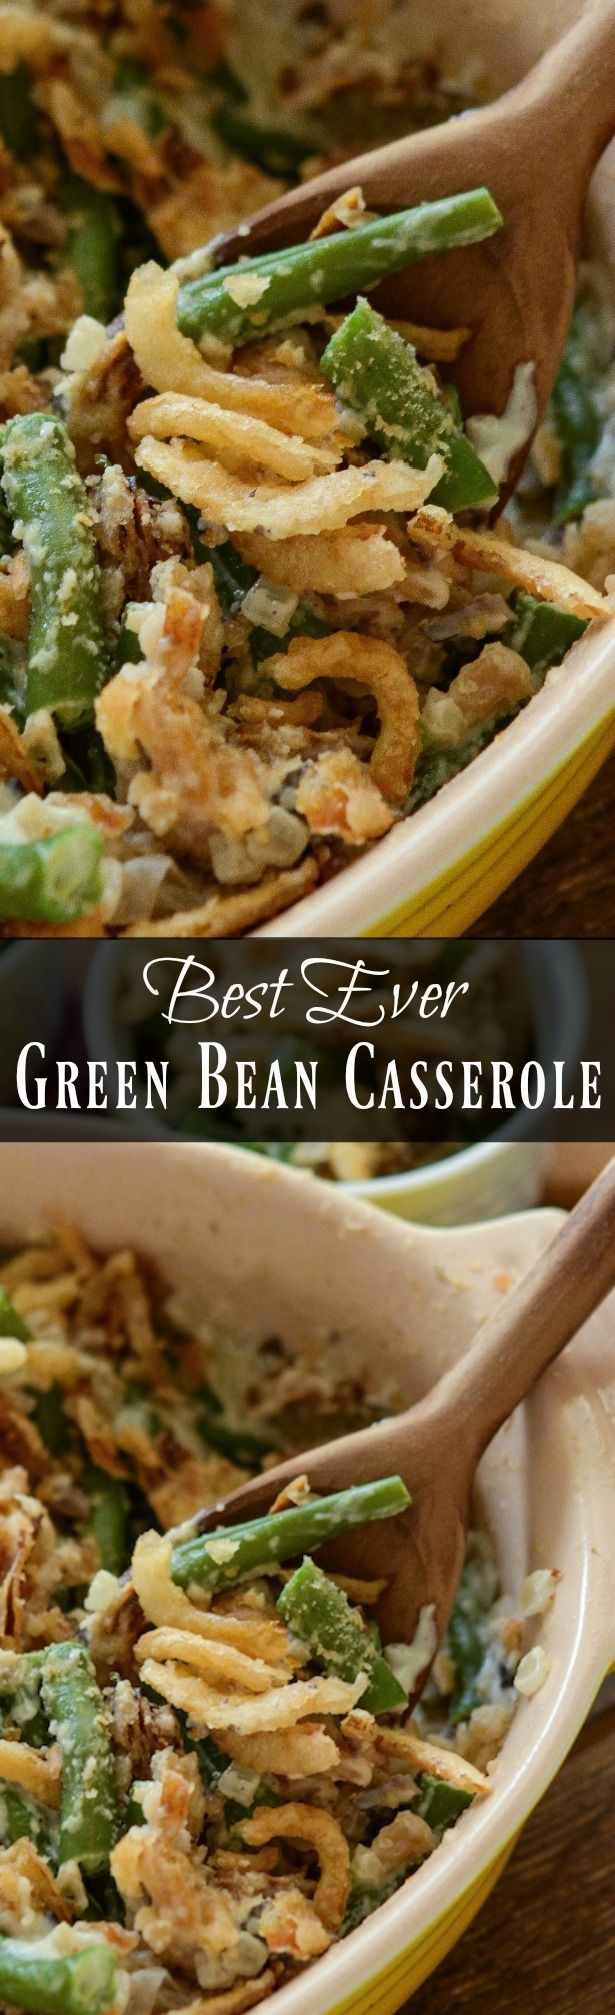 The Best Green Bean Casserole | A 5 Star Easy Recipe!